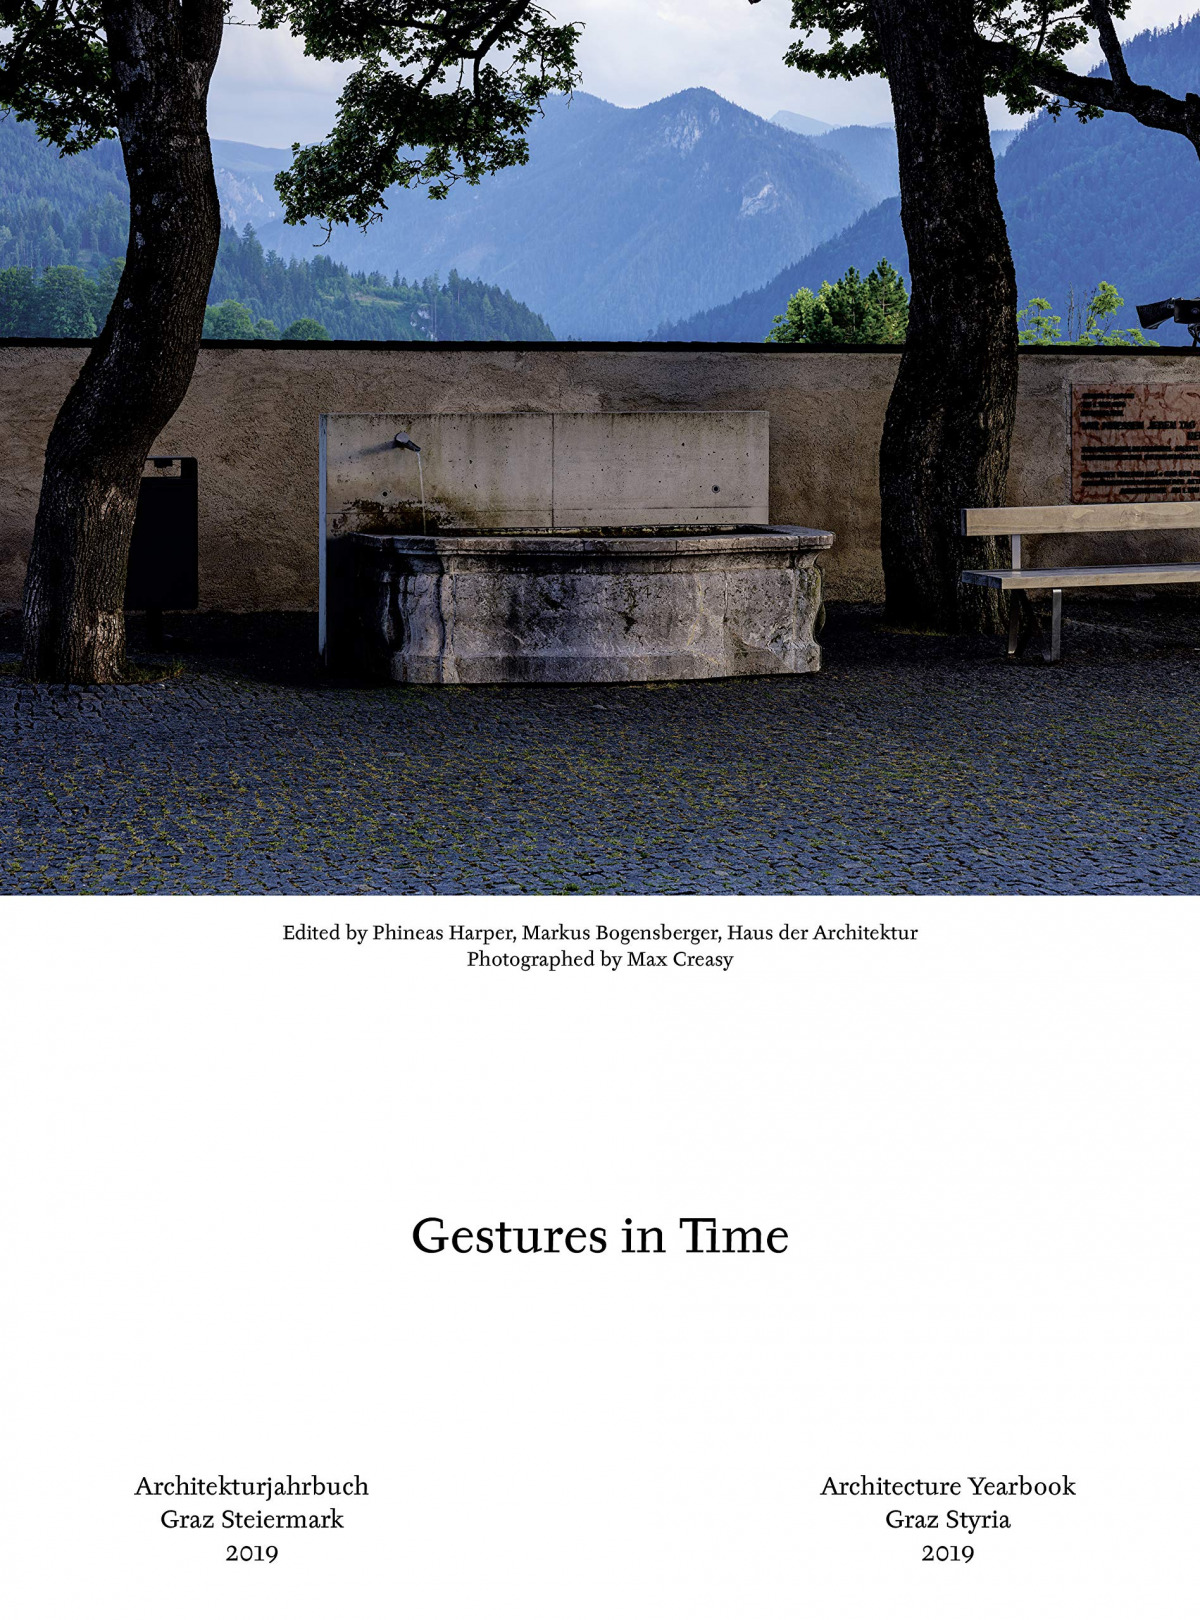 GESTURES IN TIME